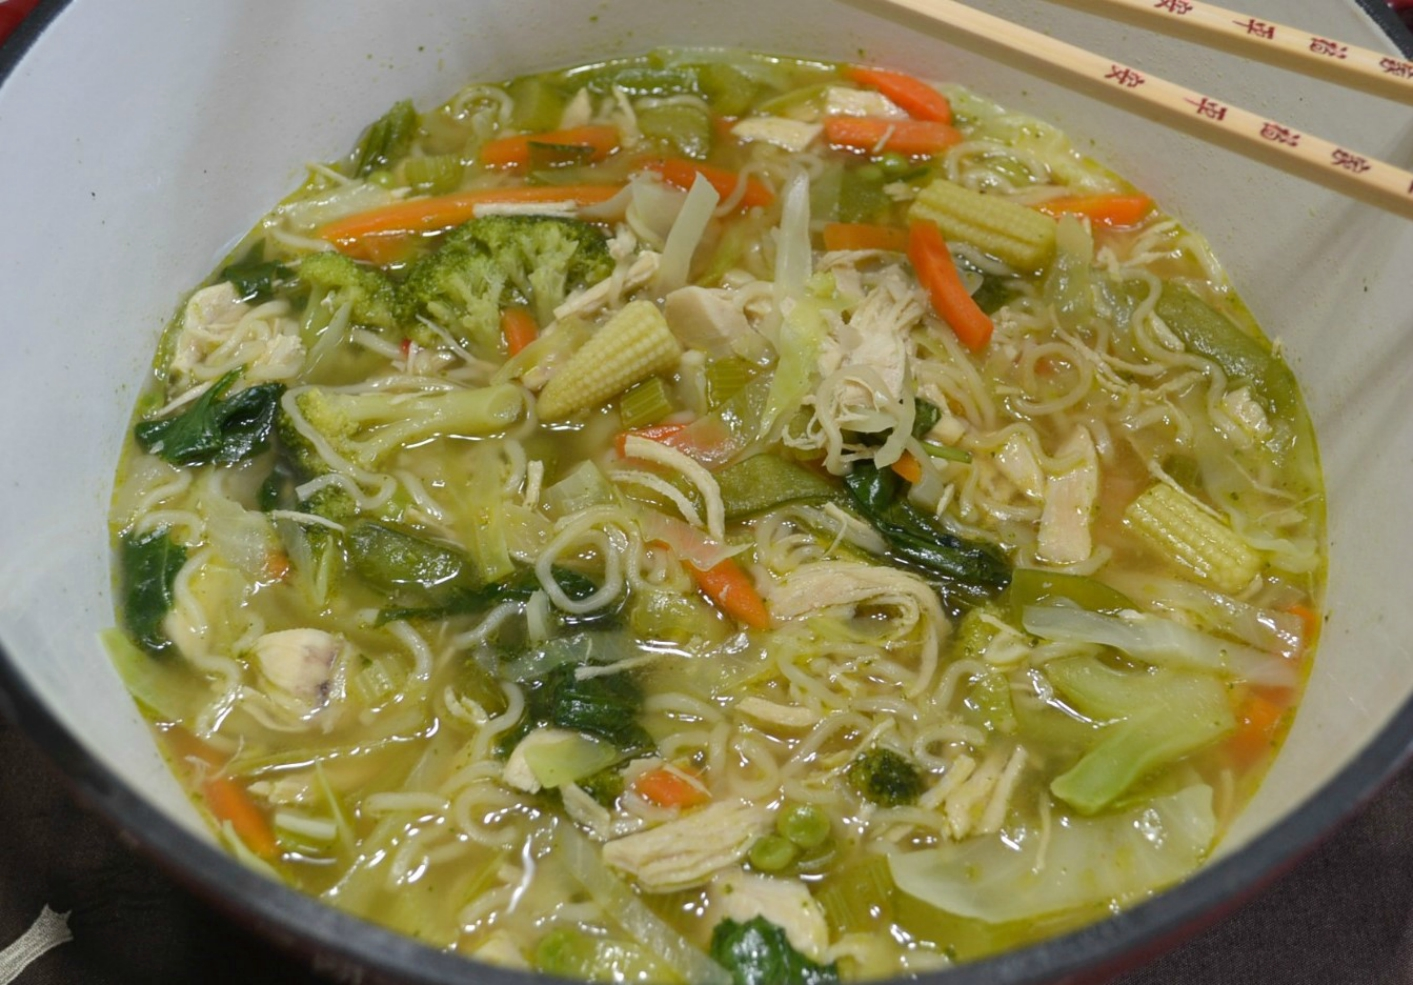 Delicious chicken noodle soup with a twist.